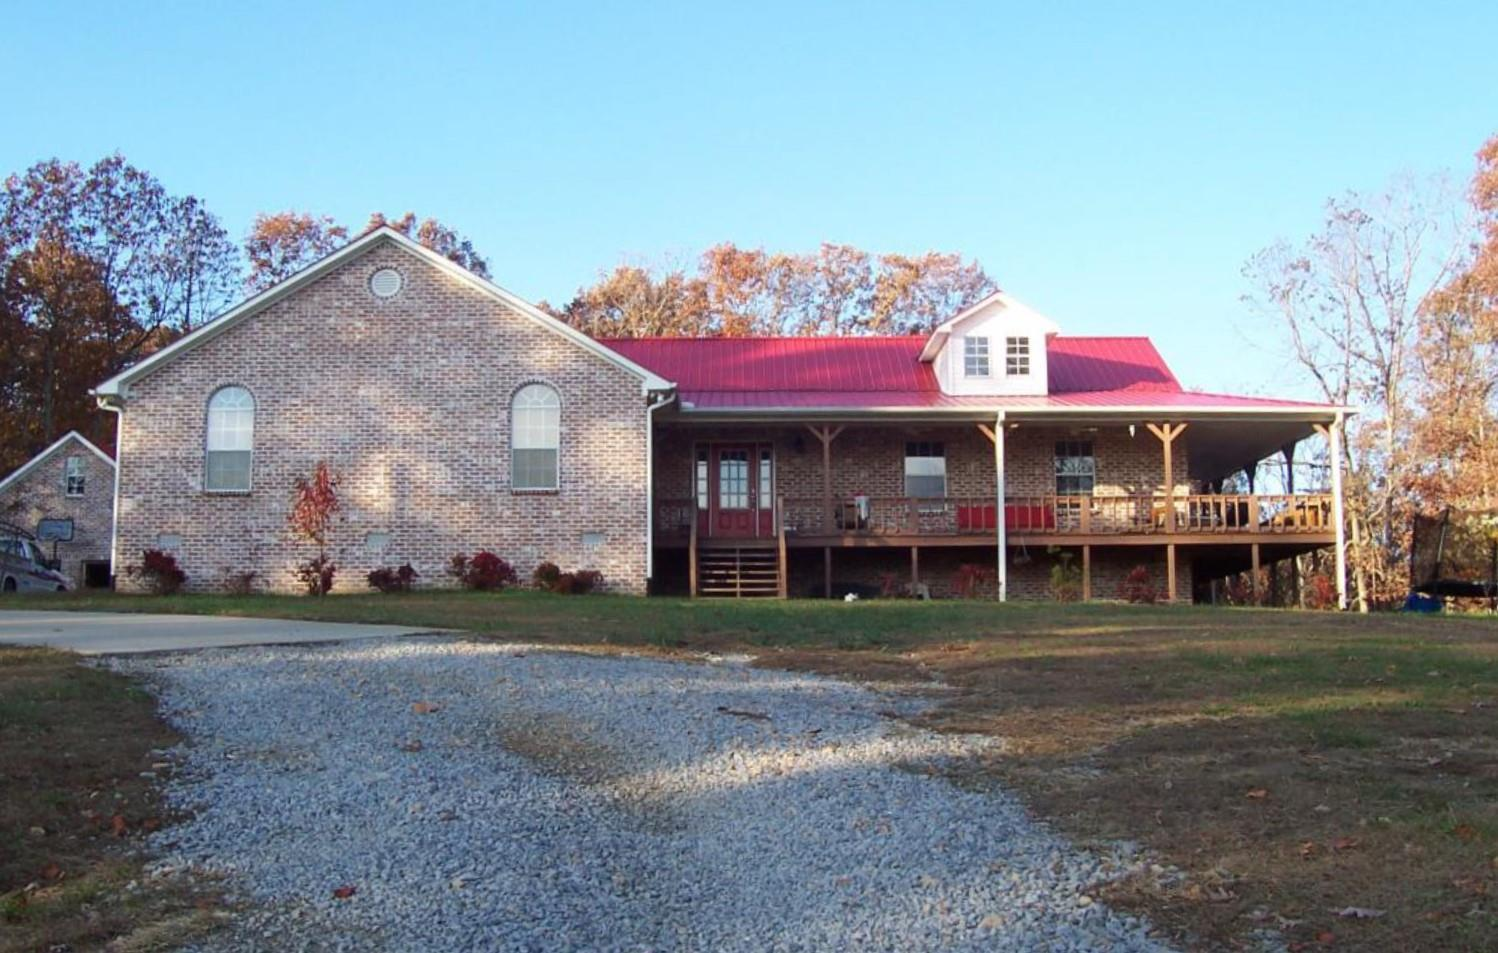 711 Johnson Hollow, MC EWEN, TN 37101 - MC EWEN, TN real estate listing